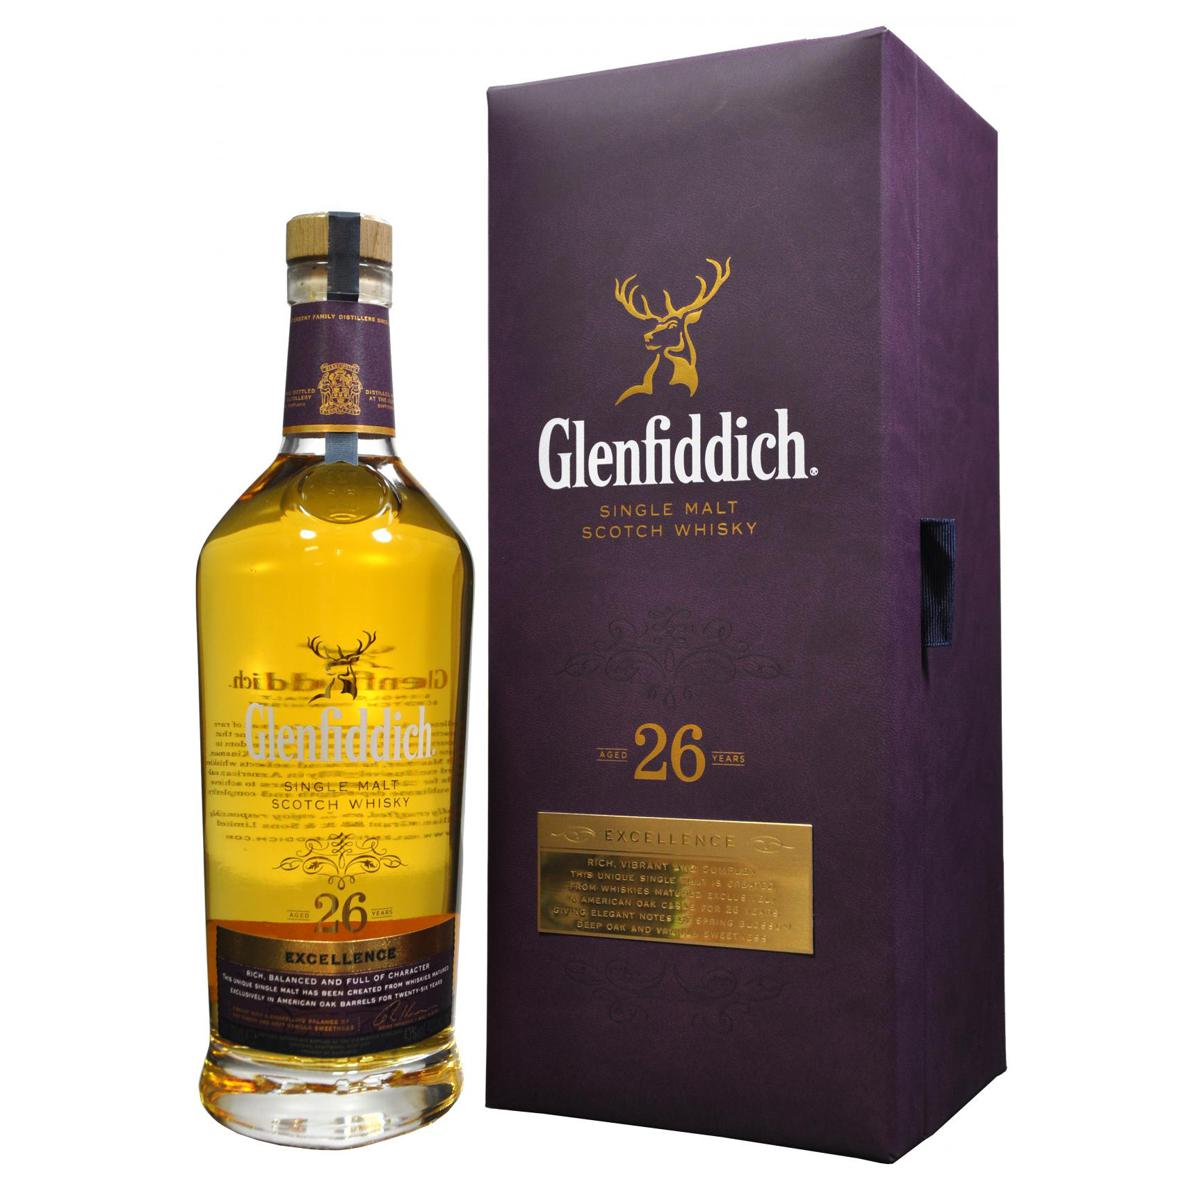 Whisky Glenfiddich Single Malt 26 anos Excellence 700ml